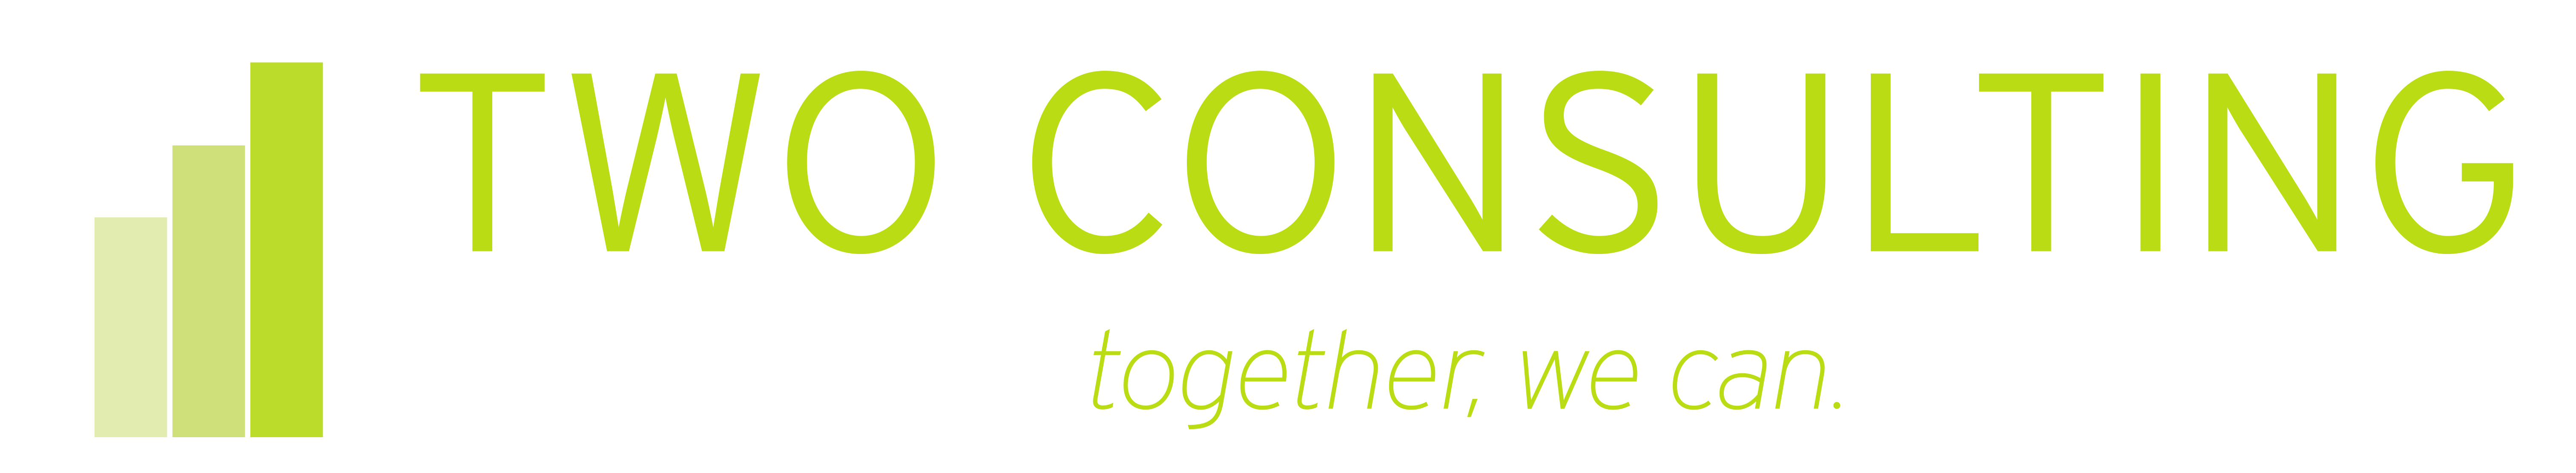 together, we can | Business Excellence | Strategy | Continuous Imrpovement | Innovation | Lean | Australia